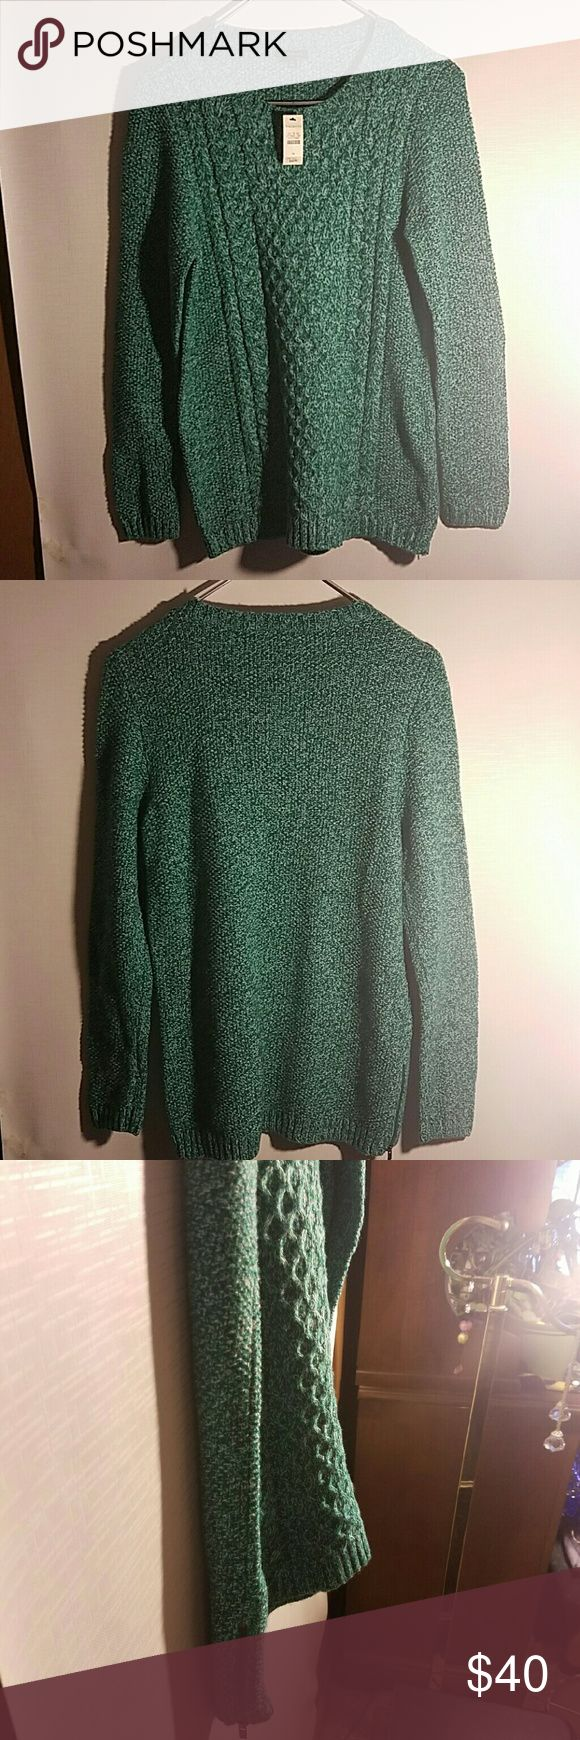 Talbots knited sweater Green knitted sweater with side zipper closures  made with  35% merino wool  35% nylon 30% acrylic Nwt Talbots Sweaters